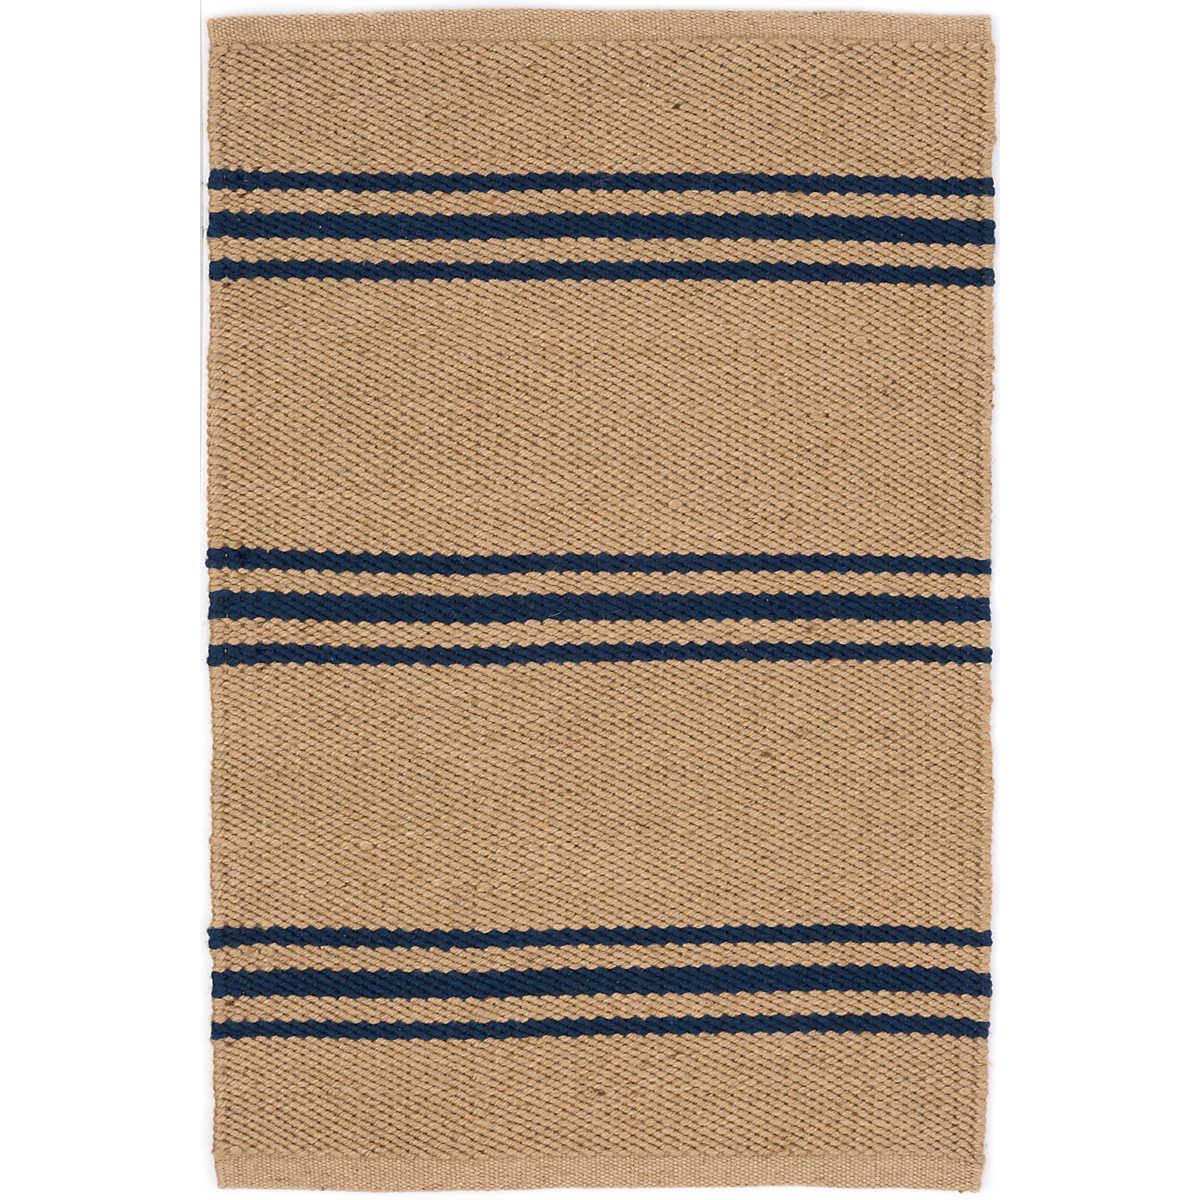 Blue Outdoor Rug 9x12: Lexington Navy/Camel Indoor/Outdoor Rug